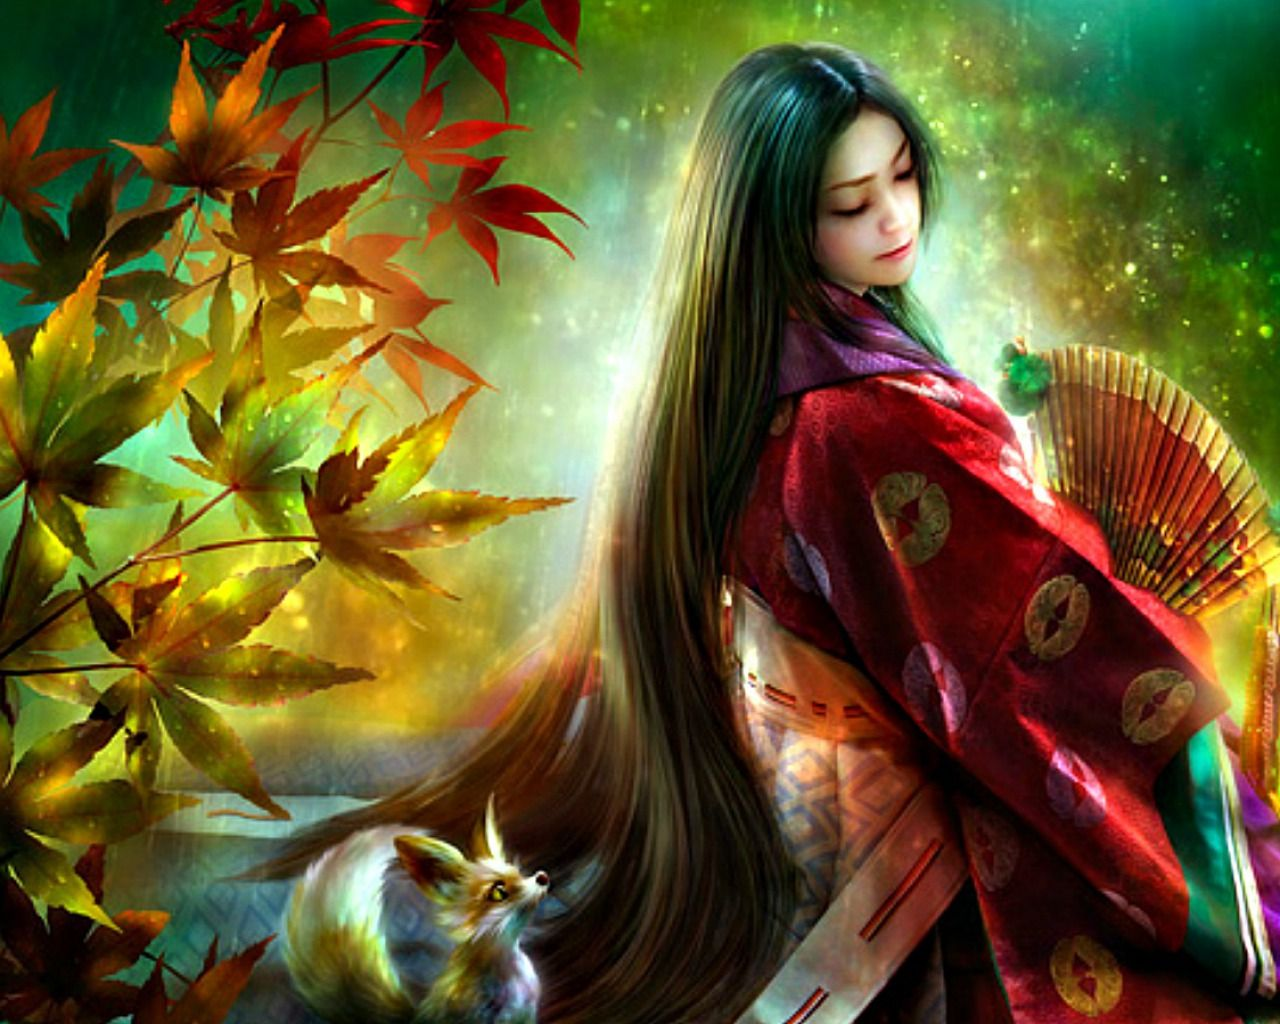 Autumn grace autumn fantasy pinterest more 3d - 3d fantasy wallpaper ...